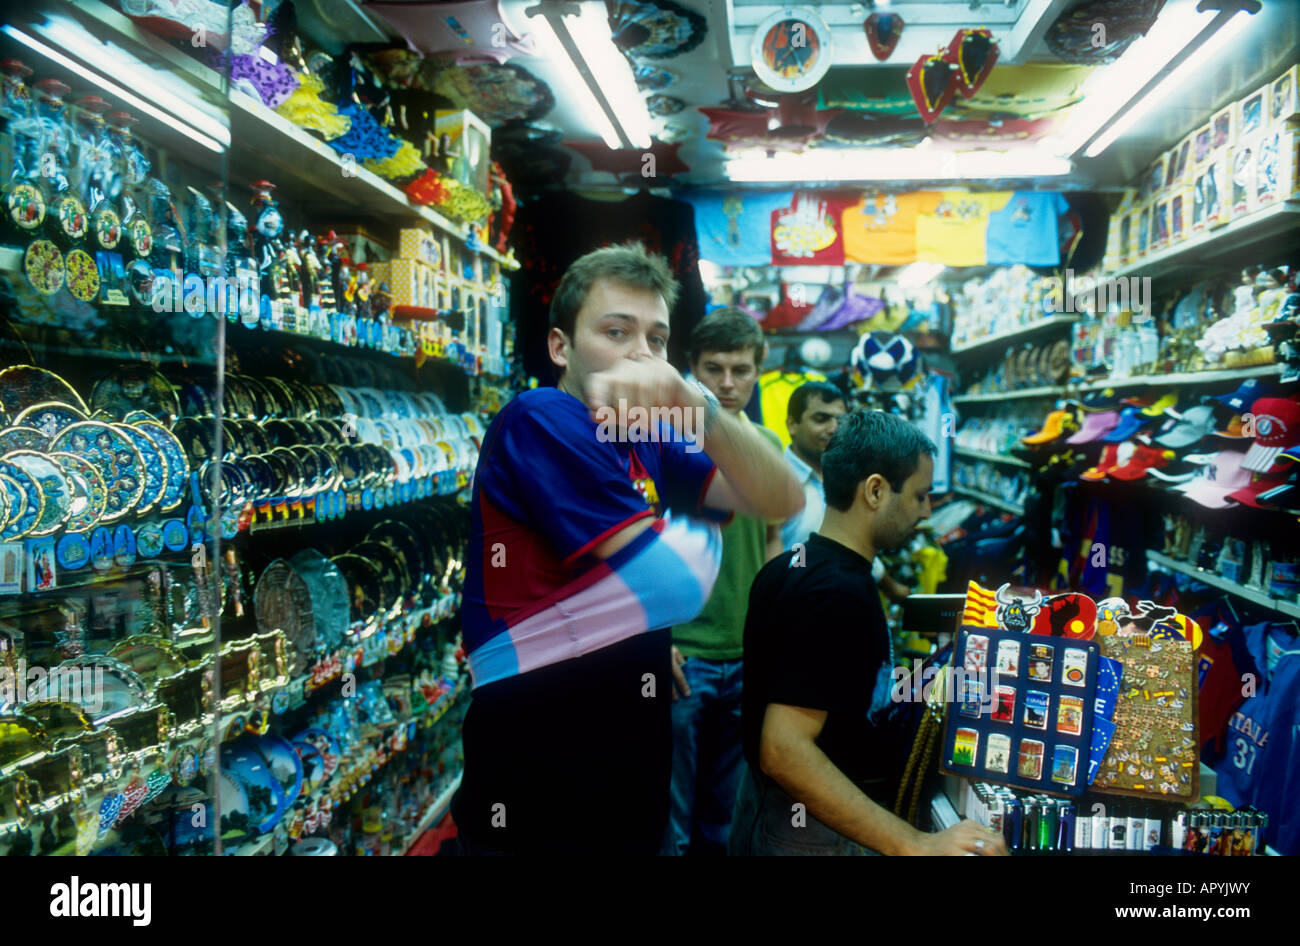 FC Barcelona football fan trying on the club shirt in a shop in Barcelona 9a8f7646fb8